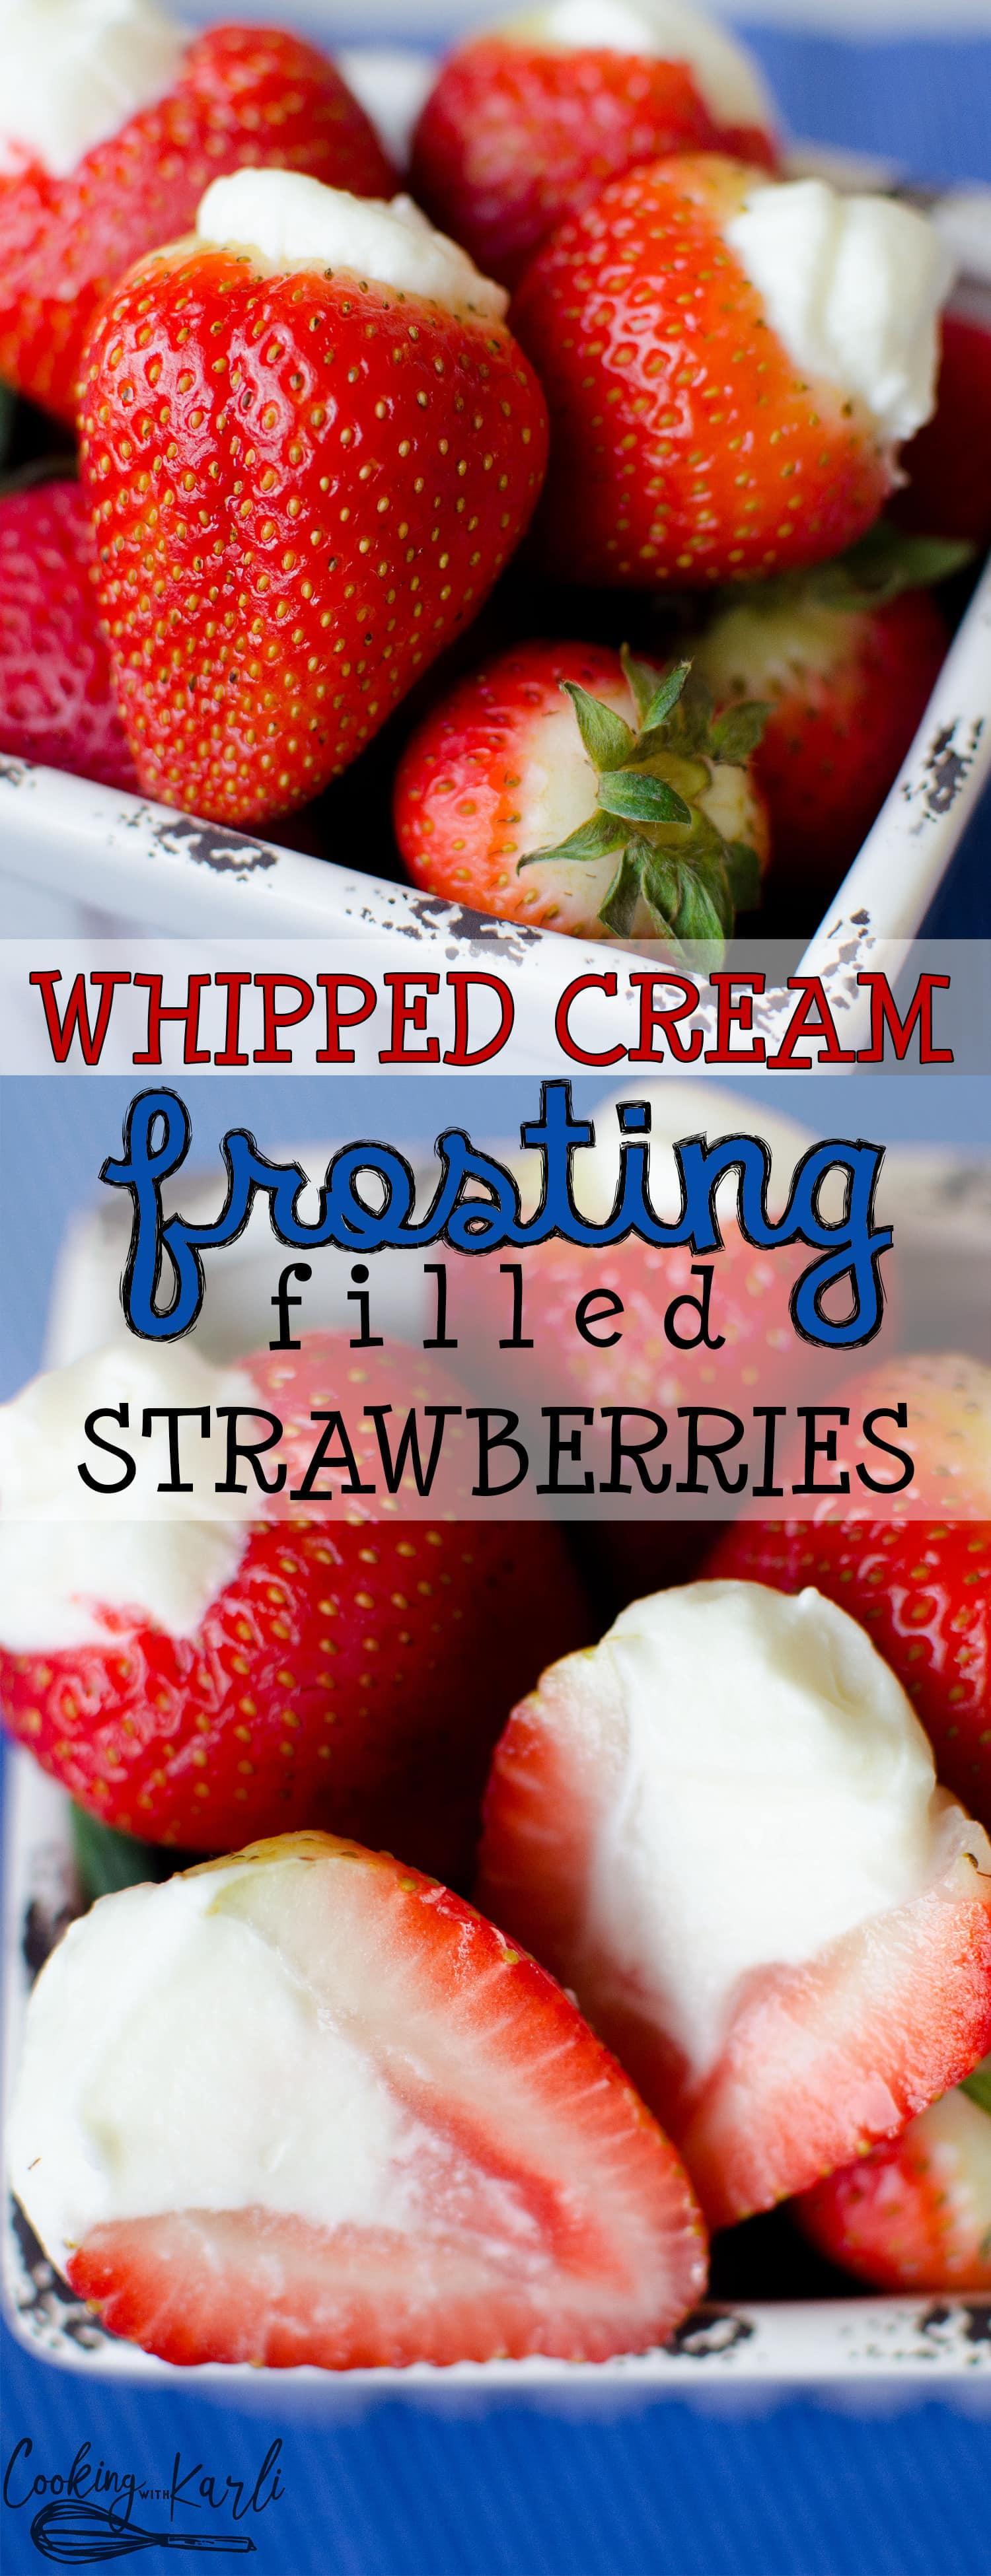 Strawberries 'n Cream are fresh strawberries filled with vanilla whipped cream frosting. This is a delicious, fresh and easy dessert. -Cooking with Karli- #summer #snack #dessert #strawberries #cream #recipe